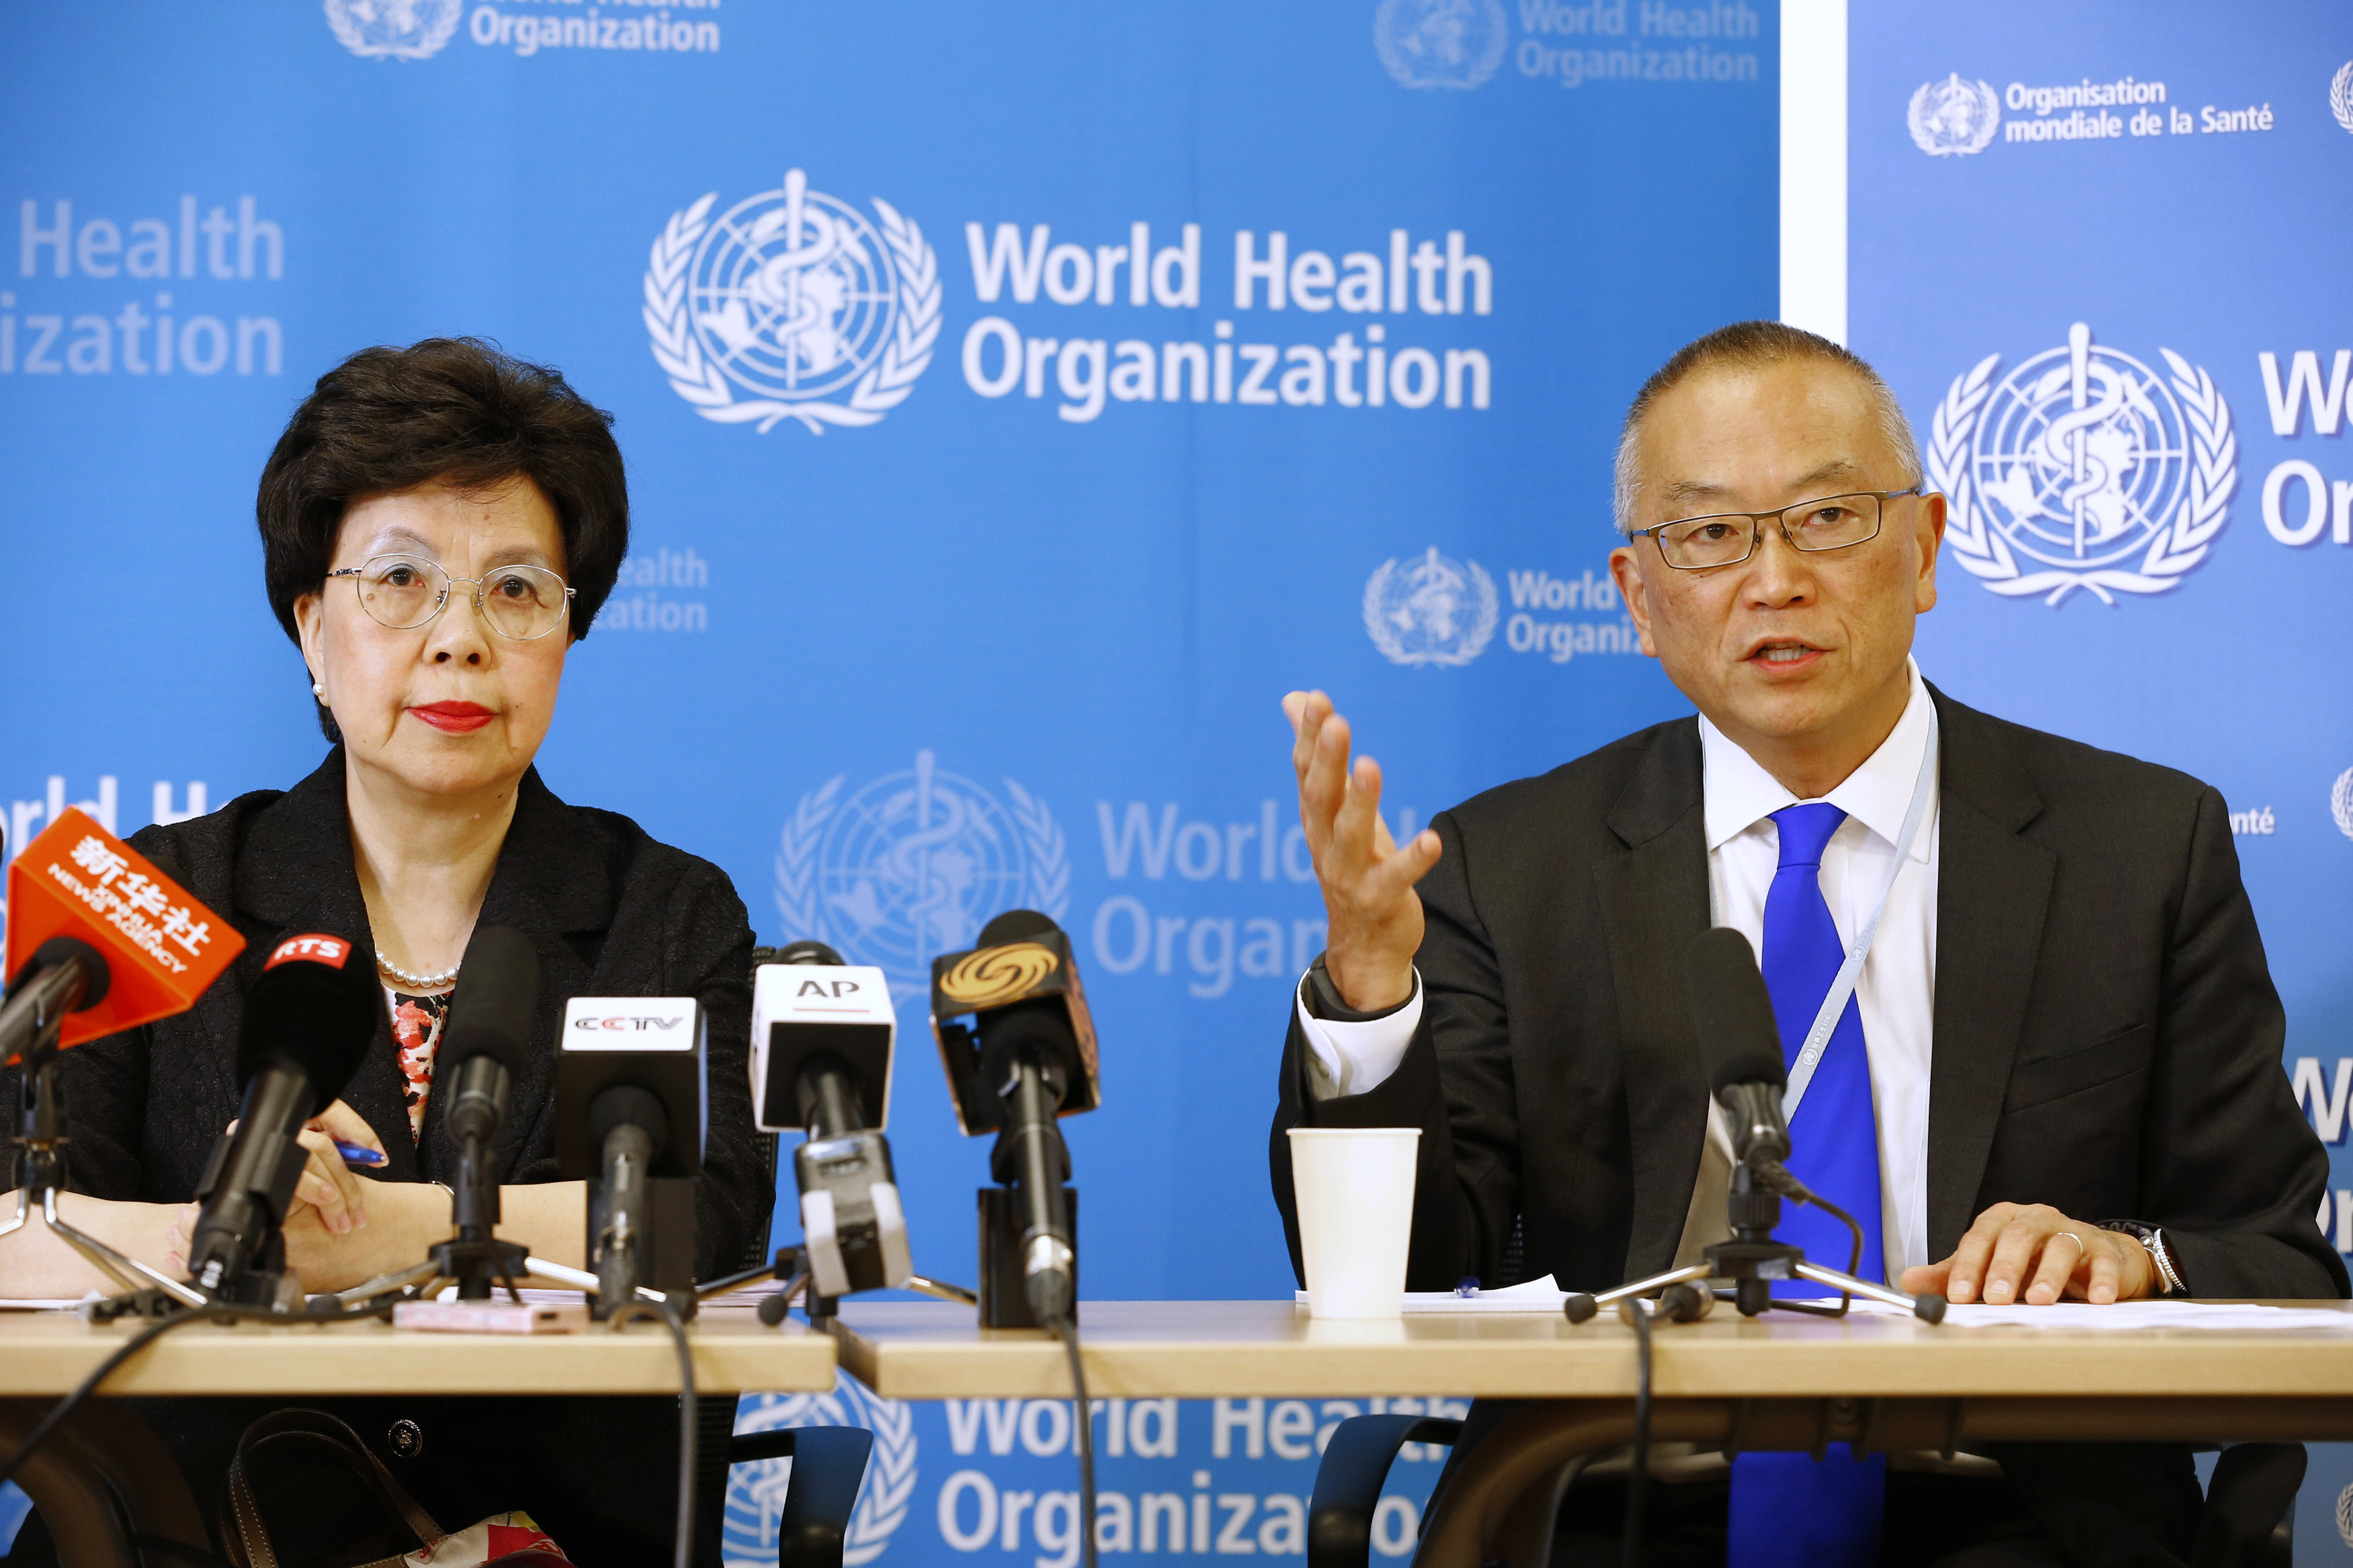 World Health Organization Director-General Margaret Chan sits next to Keiji Fukuda, WHO's assistant director general for health security, at a press conference following a two-day meeting of its emergency committee on Ebola, in Geneva on August 8, 2014.